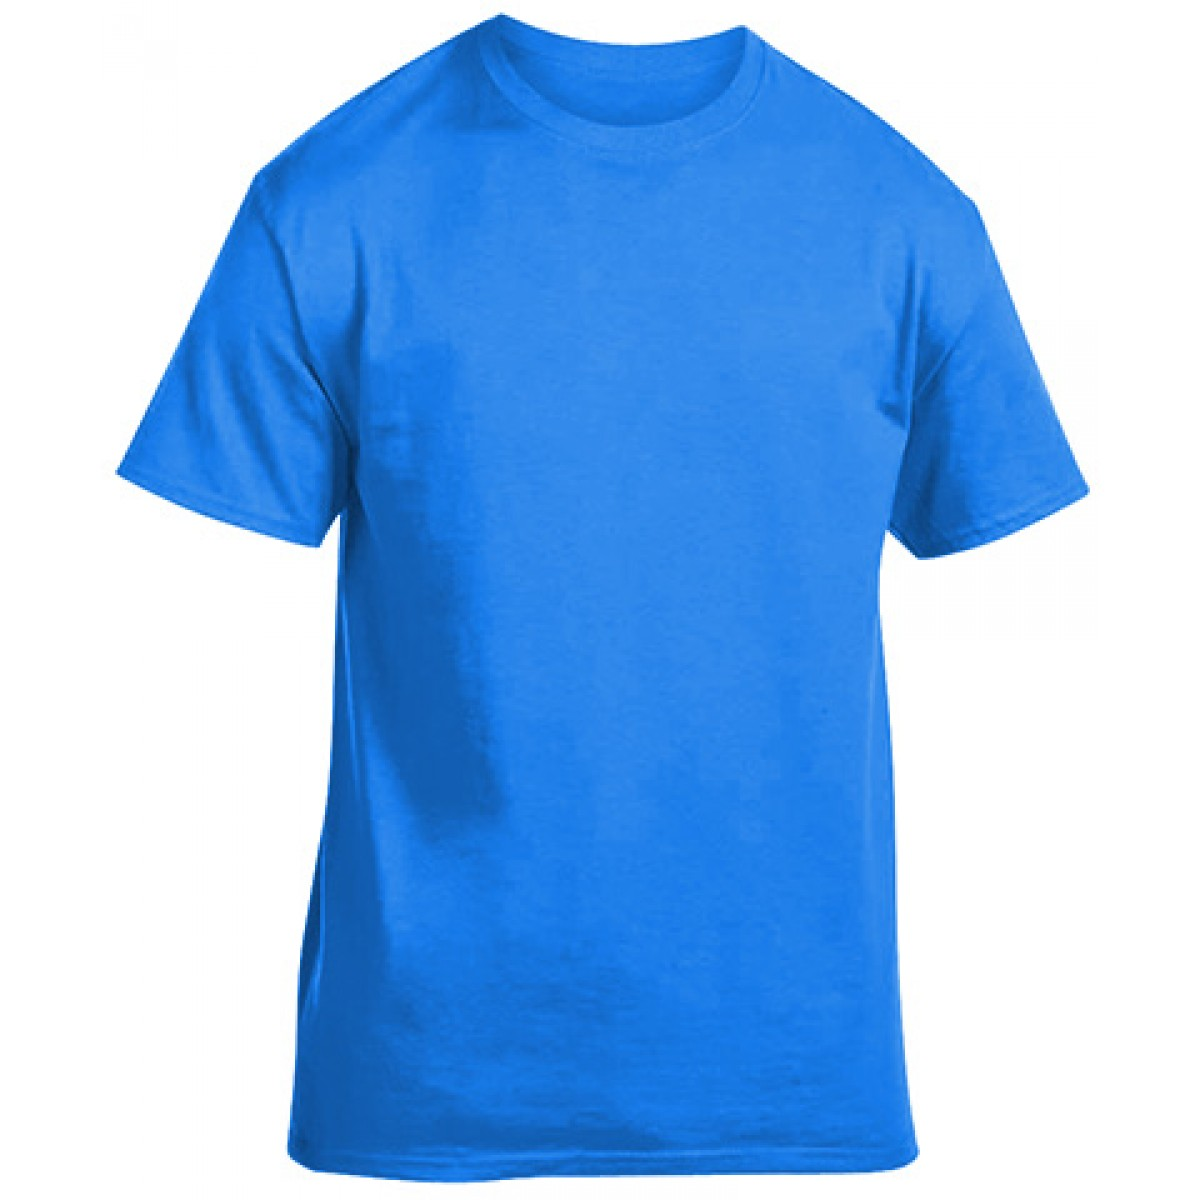 Soft 100% Cotton T-Shirt-Neon Blue-XL